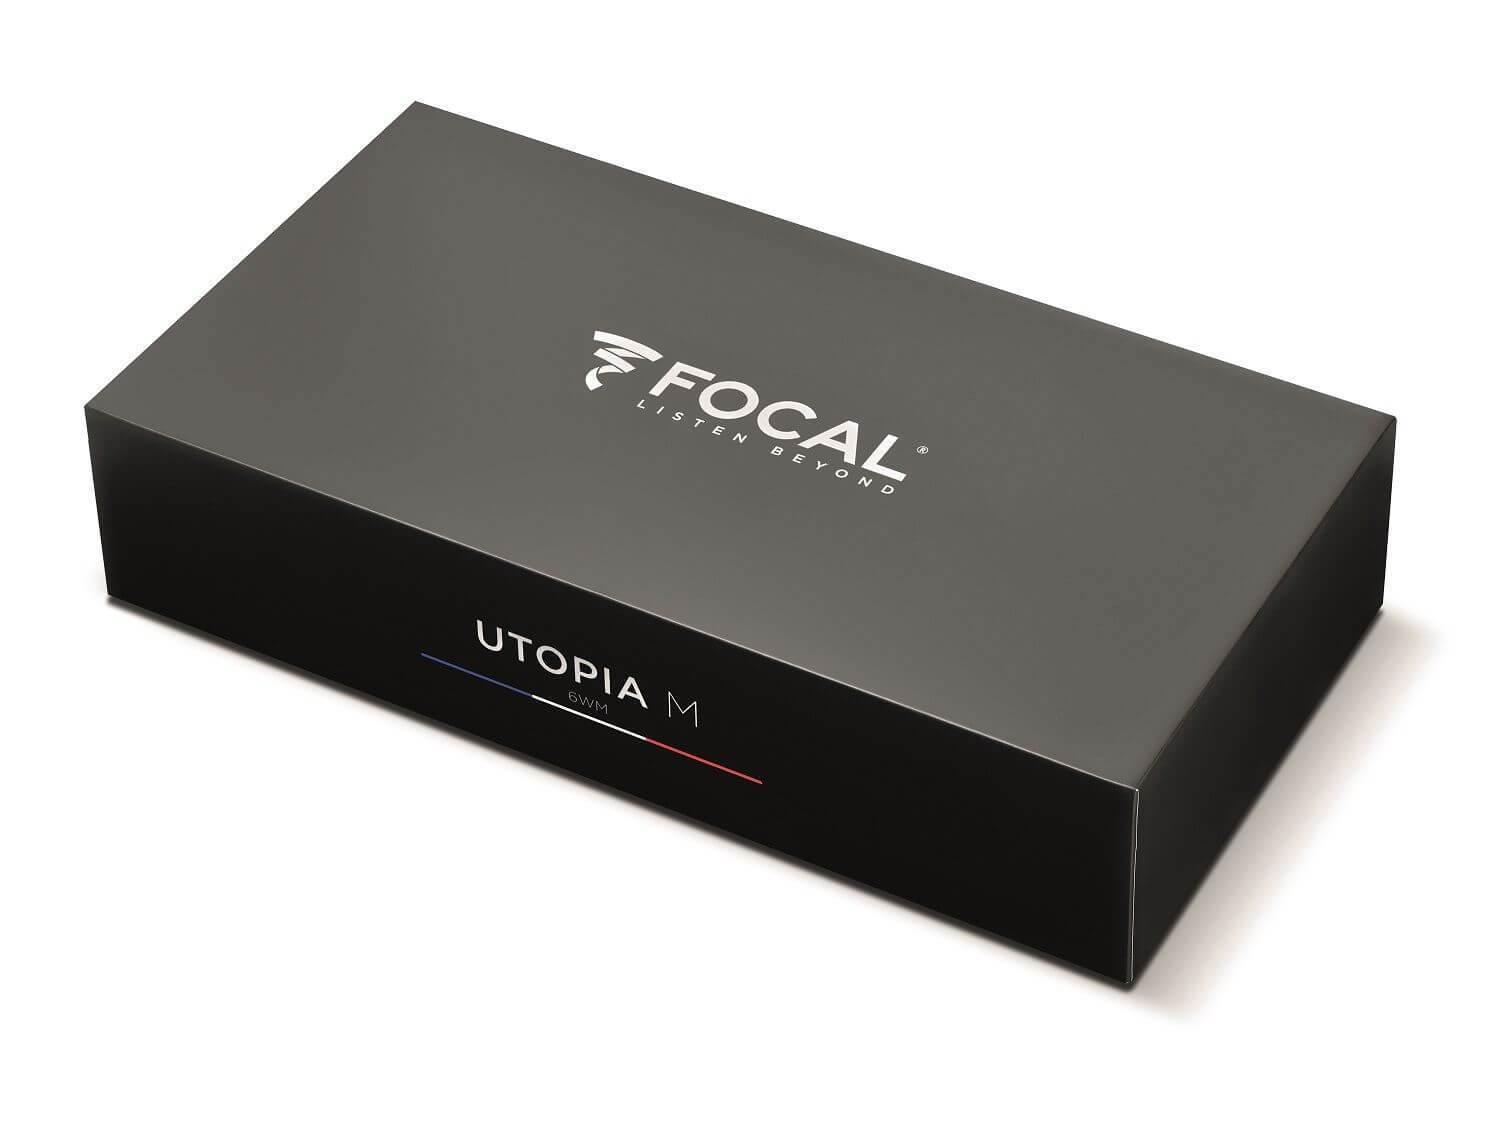 Focal Elite Utopia M - 6WM Woofer - Box